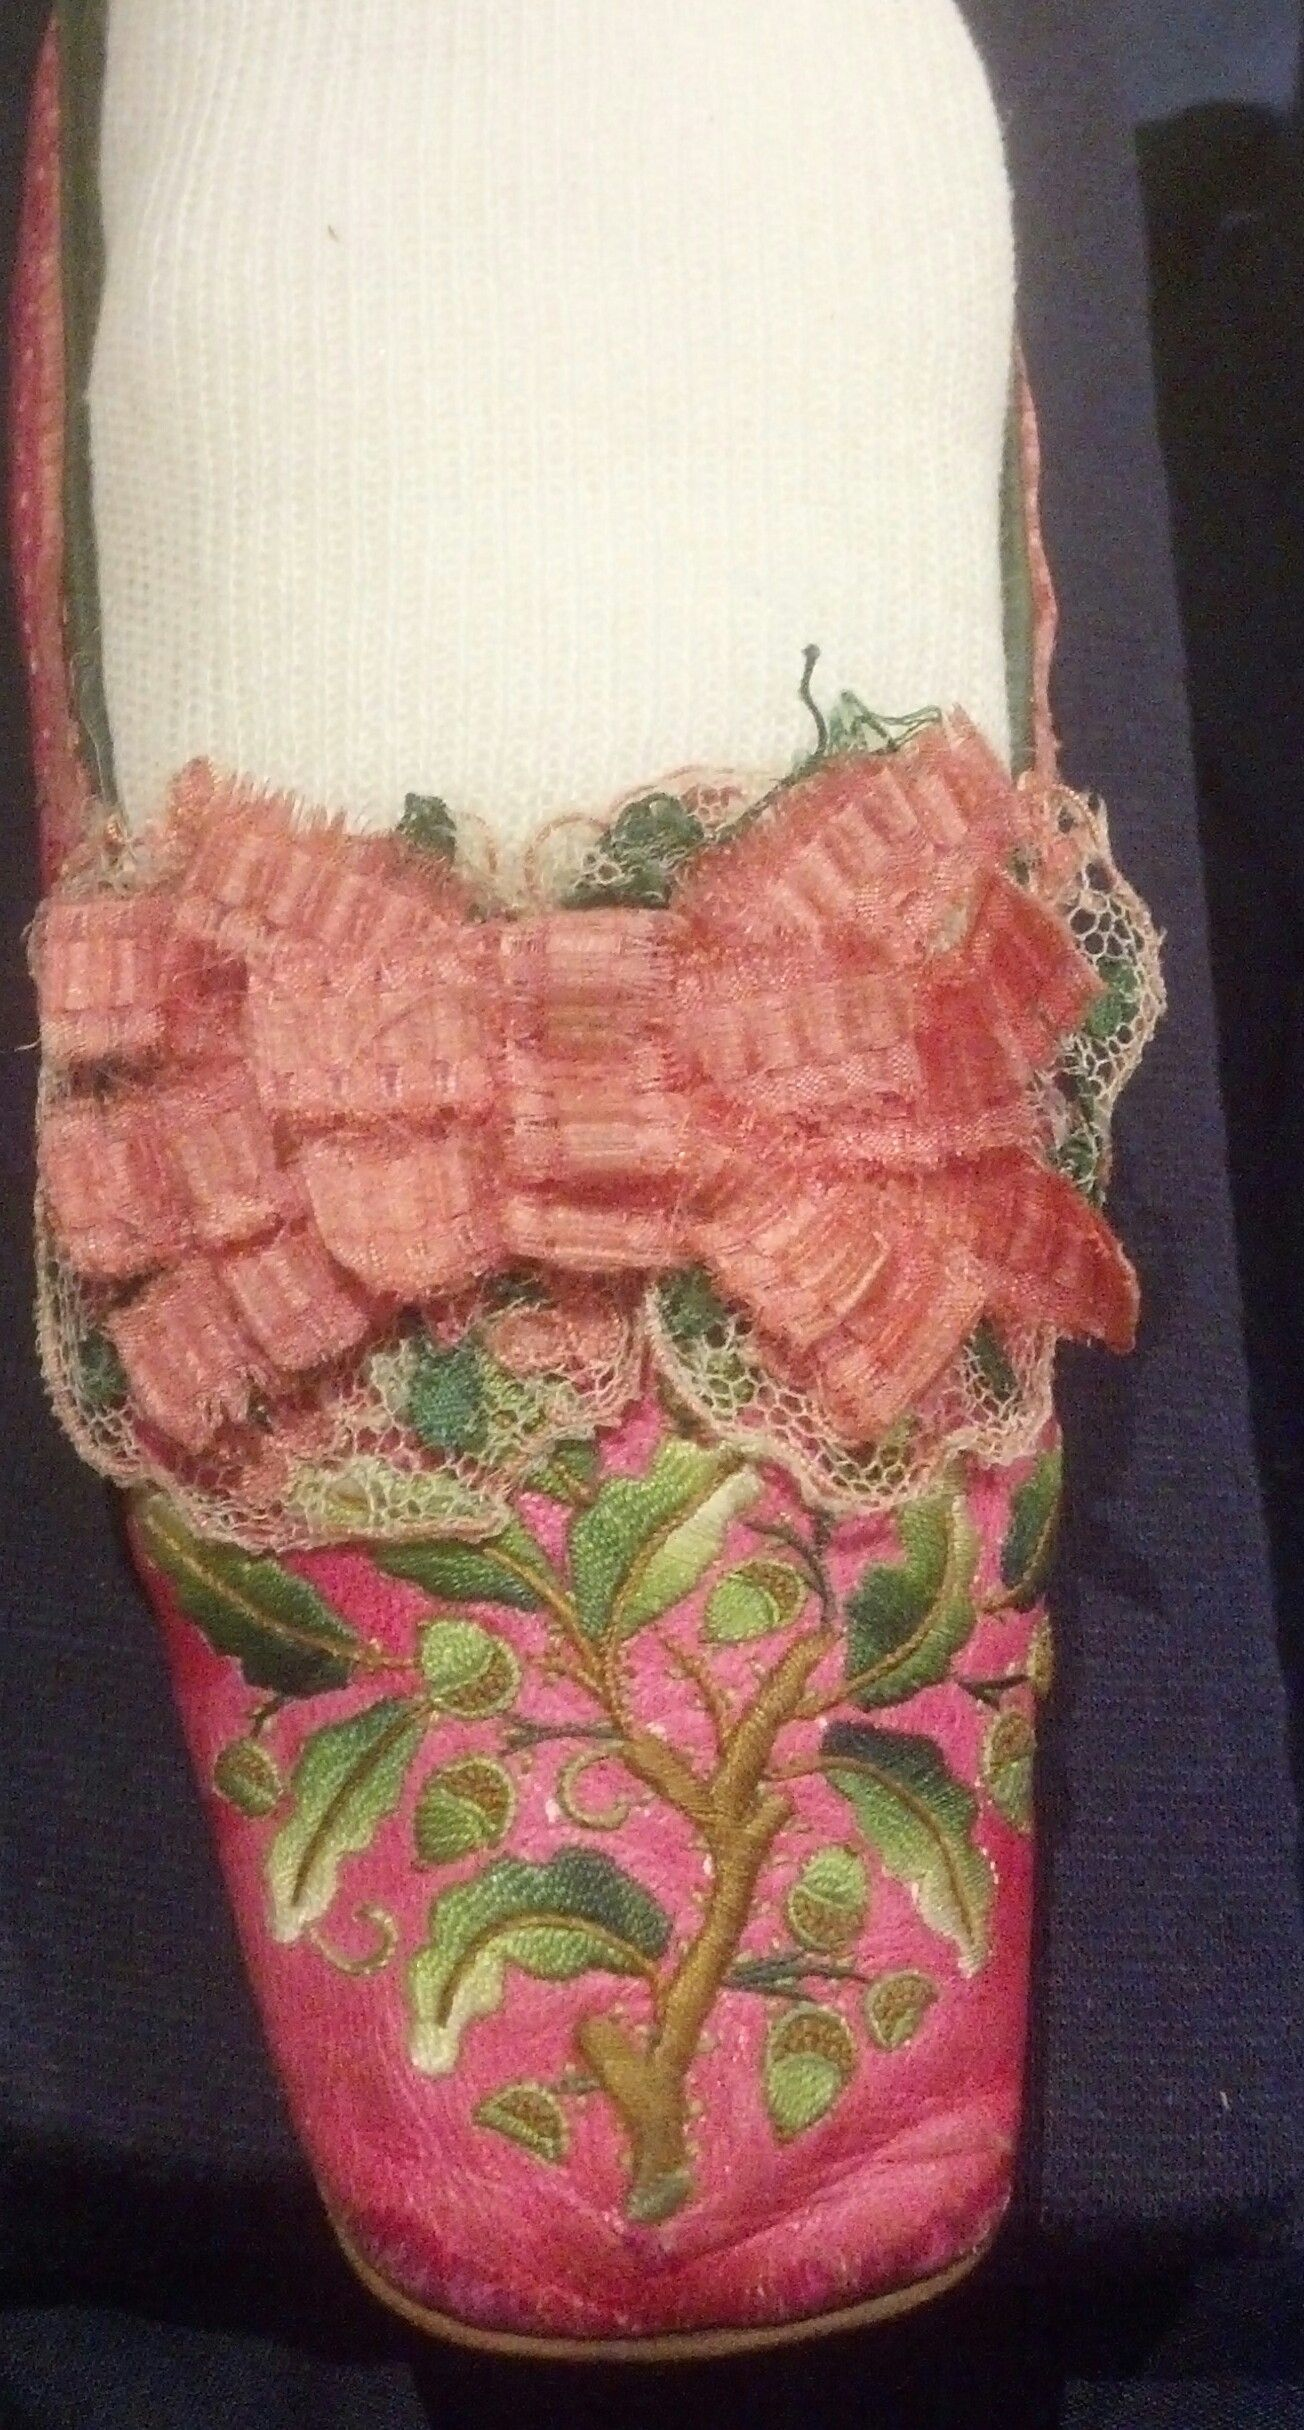 Pink Kid embroidered shoe Susan Greene Historic Clothing Collection